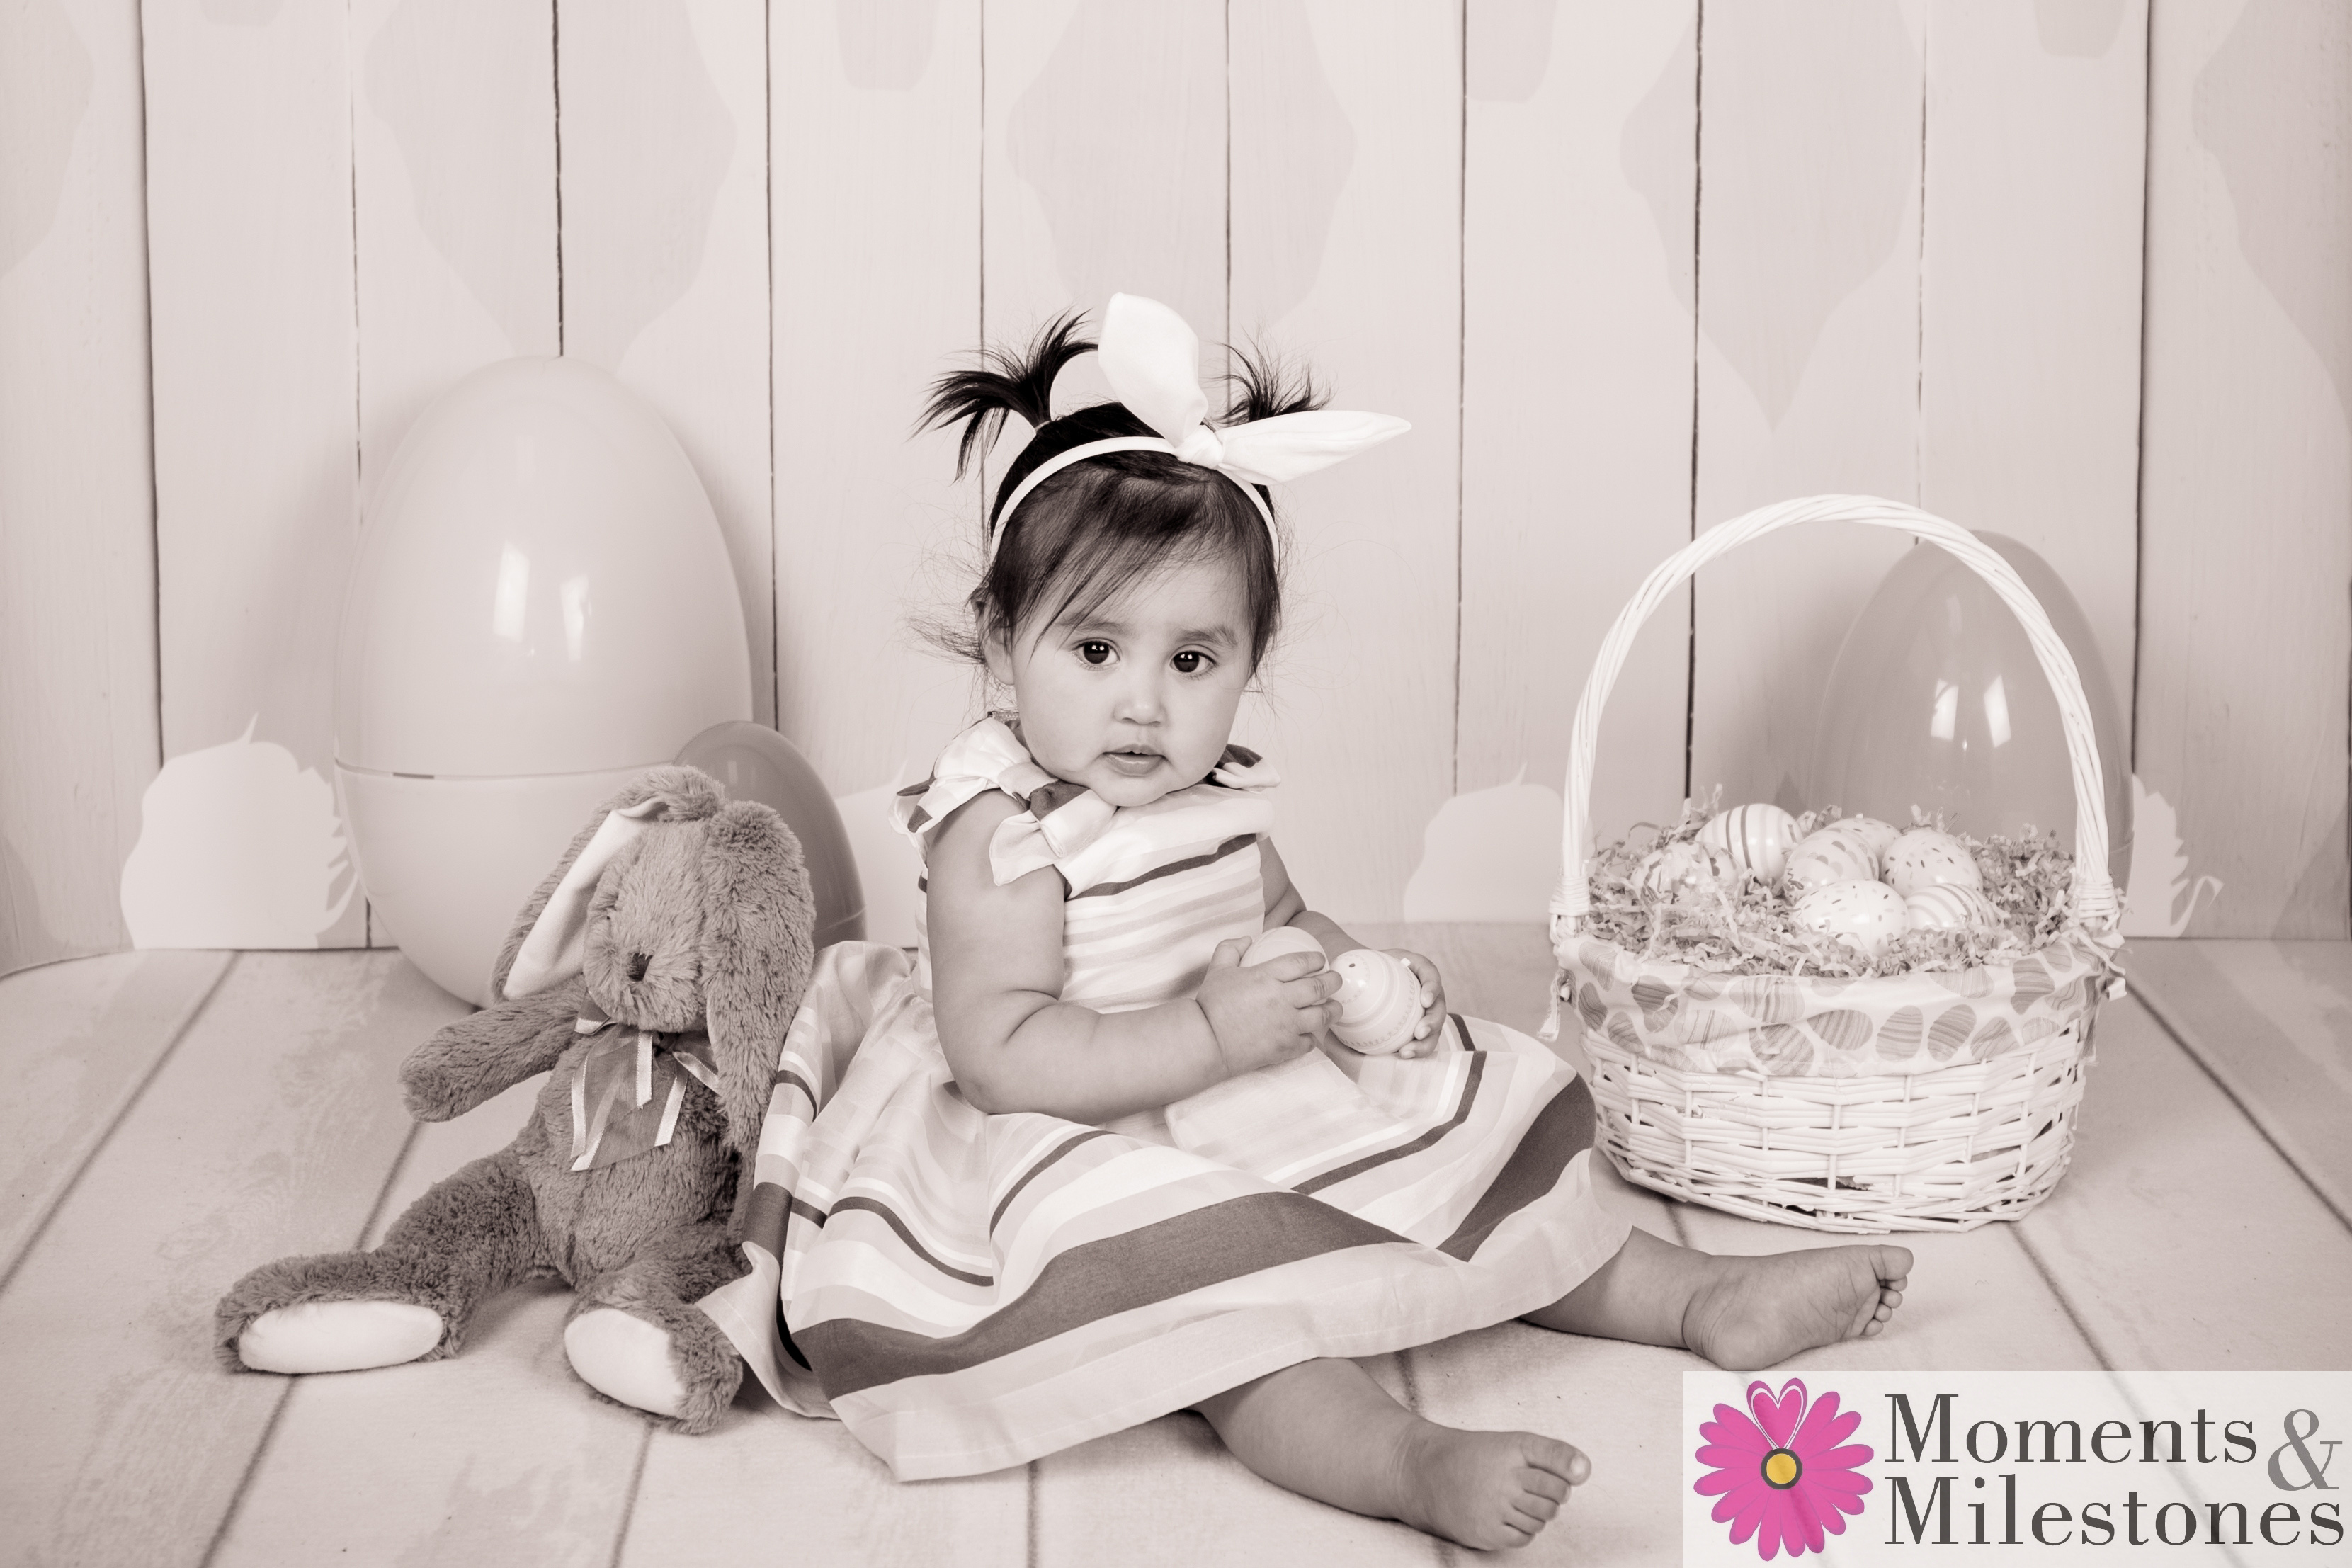 Easter Mini-Session Moments & Milestones Studio Photography San Antonio Family and Children Sessions (5)